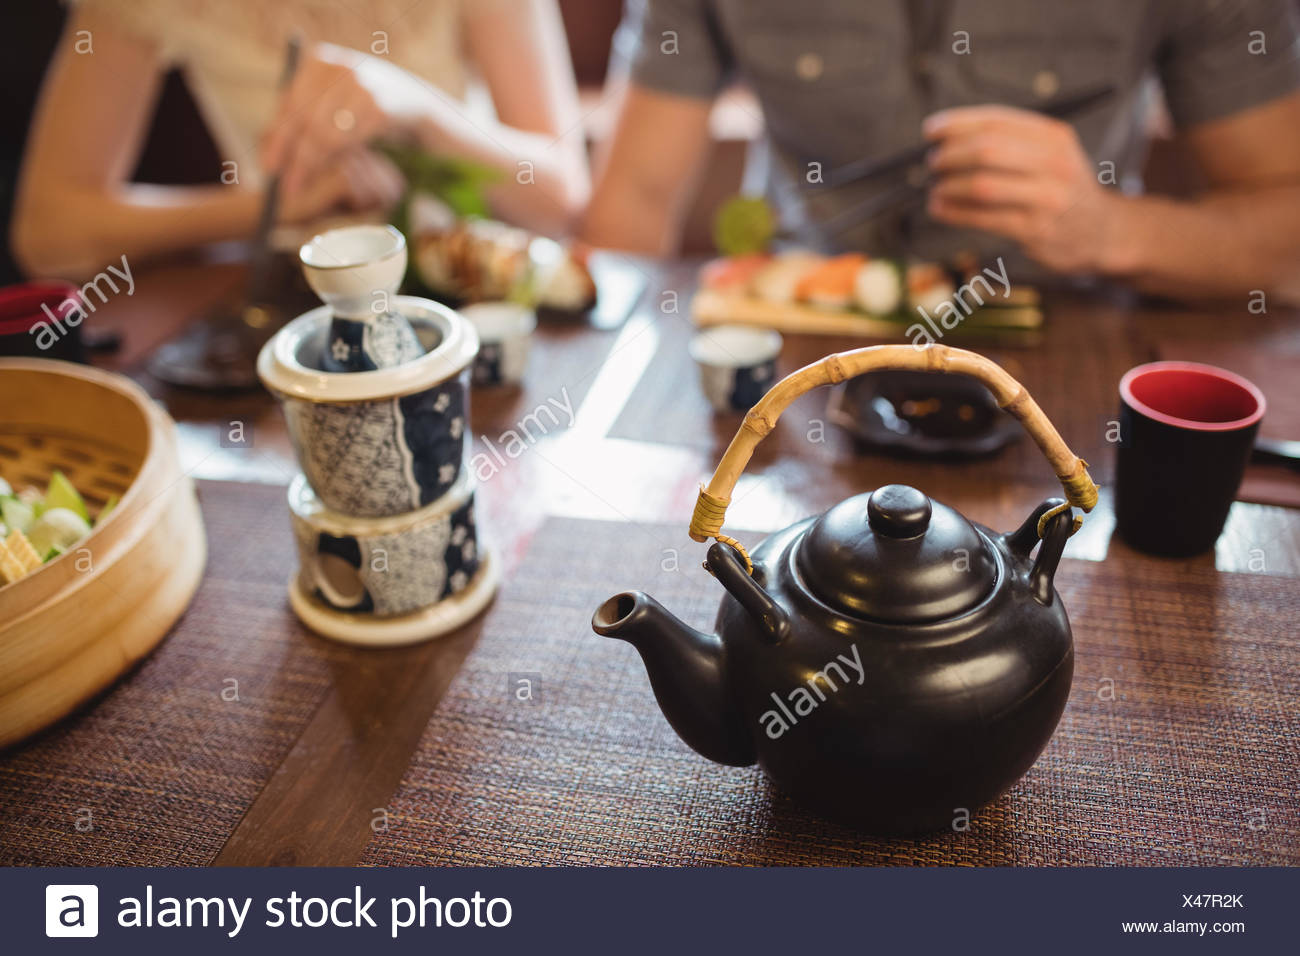 Teapot and mug on dining table - Stock Image